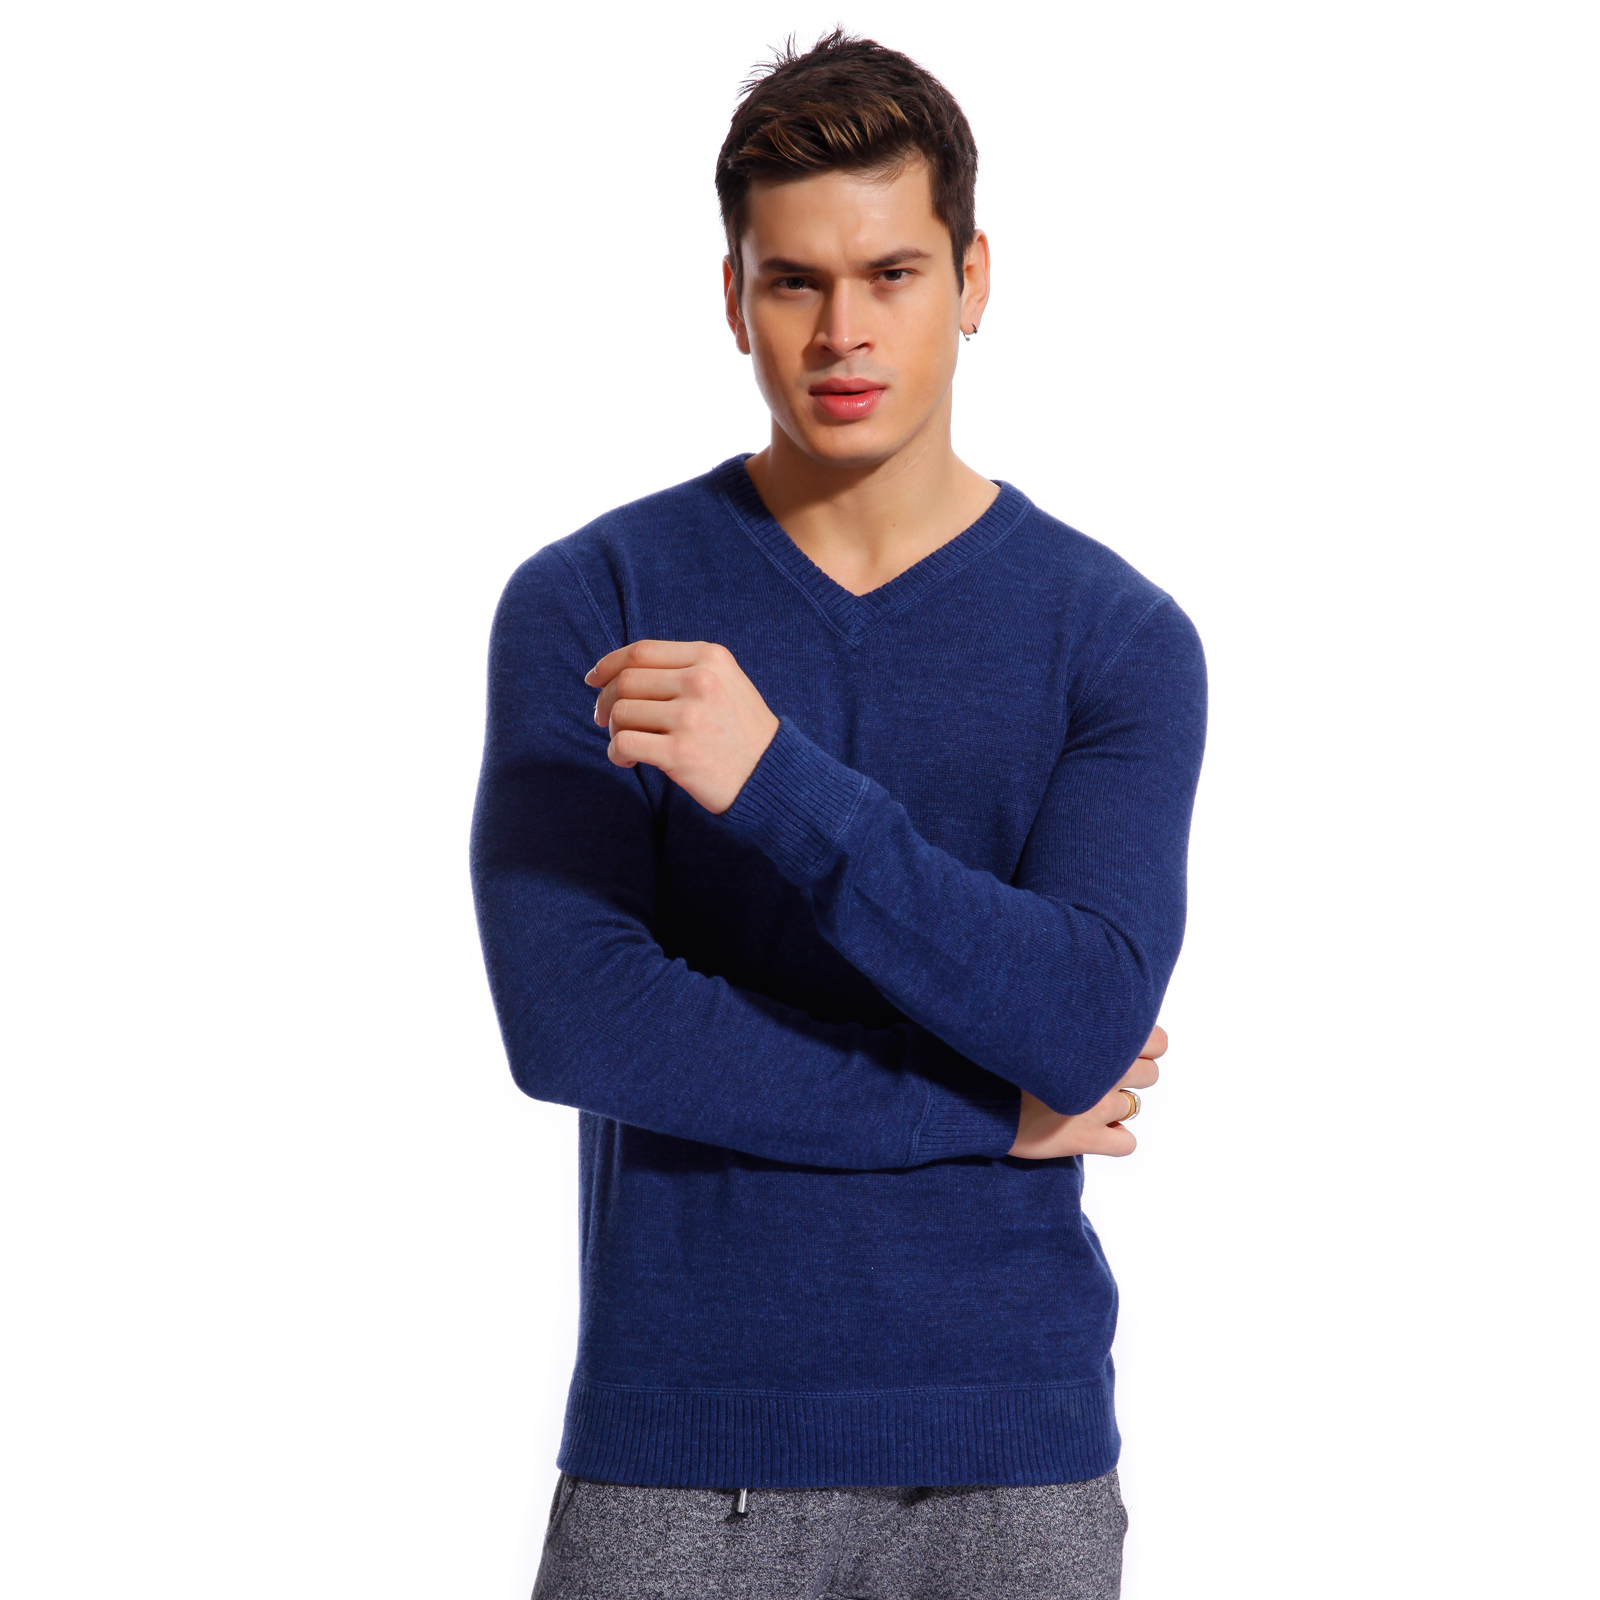 Copperside Mens 100% Cotton V-Neck Sweater | eBay